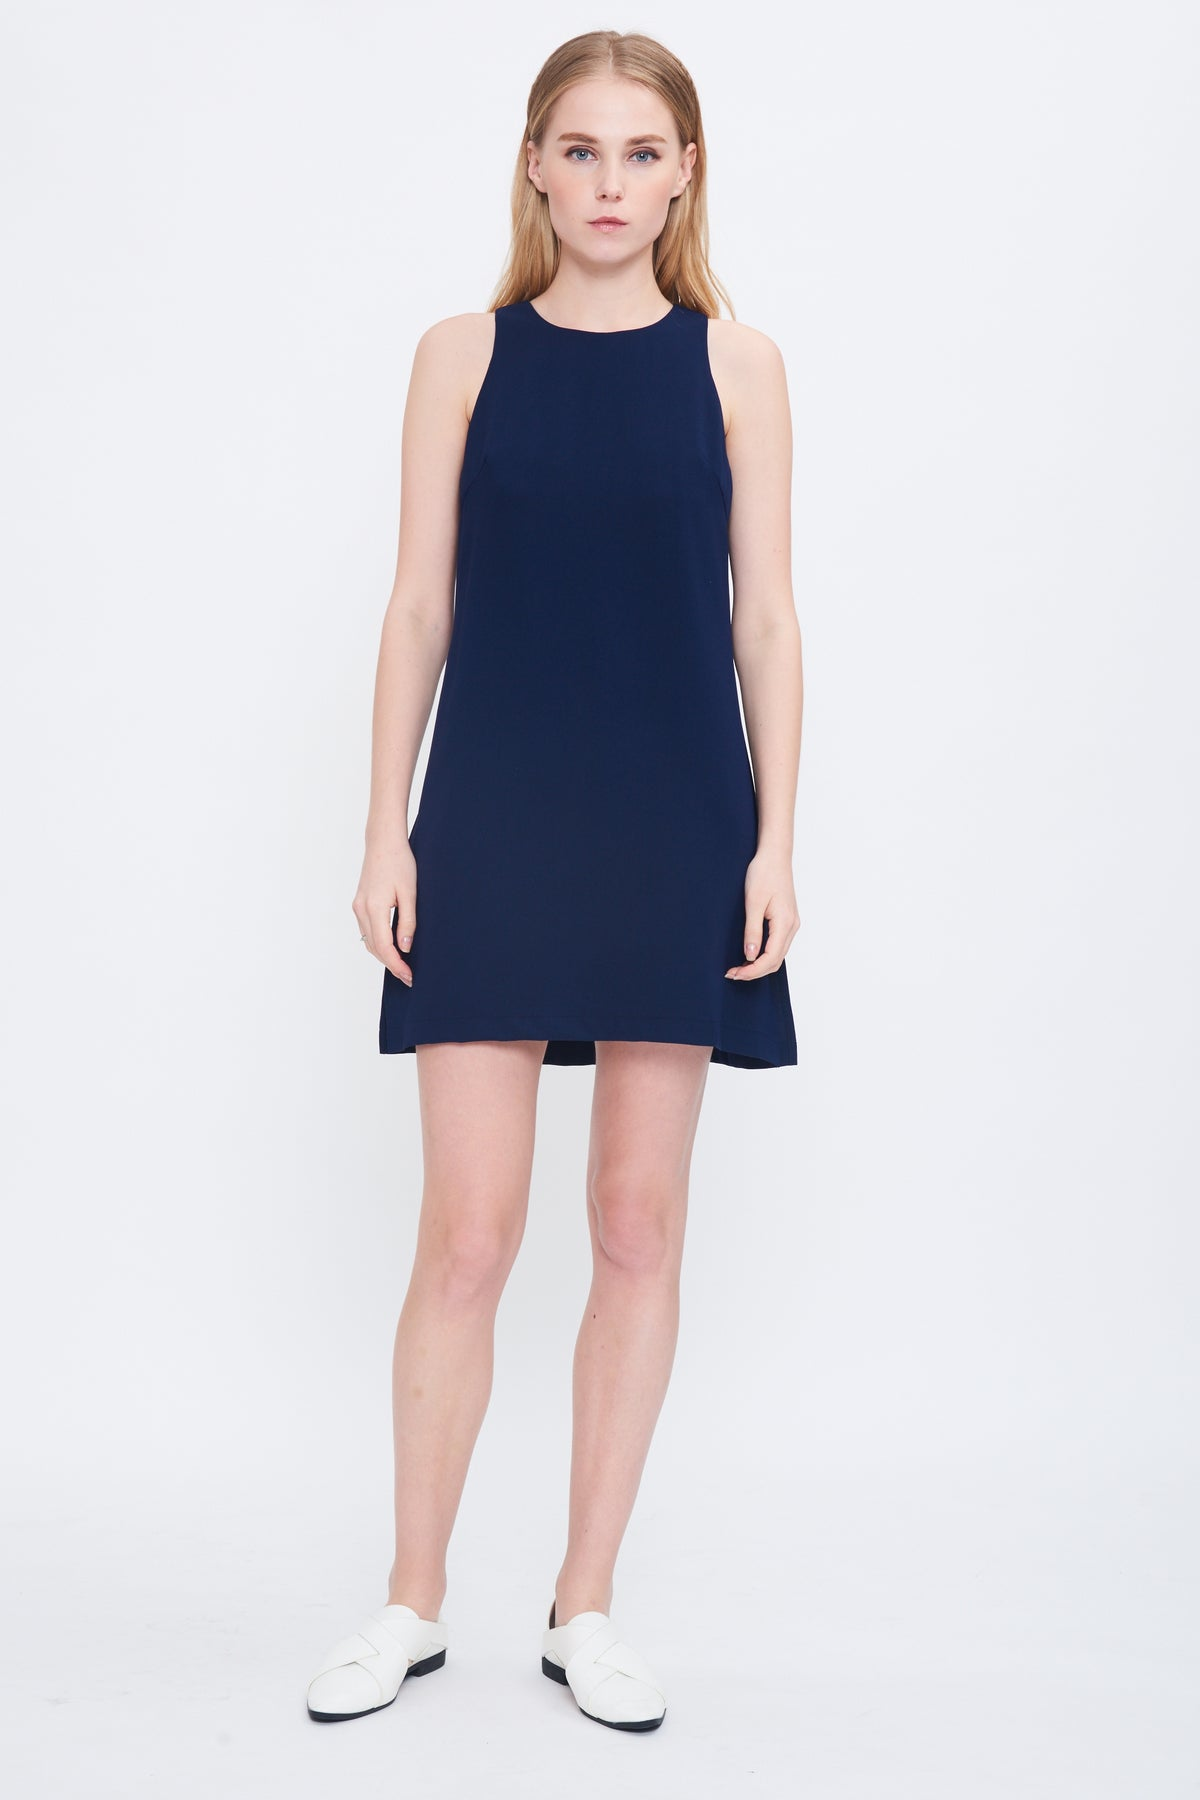 Playsuit Dress in Navy